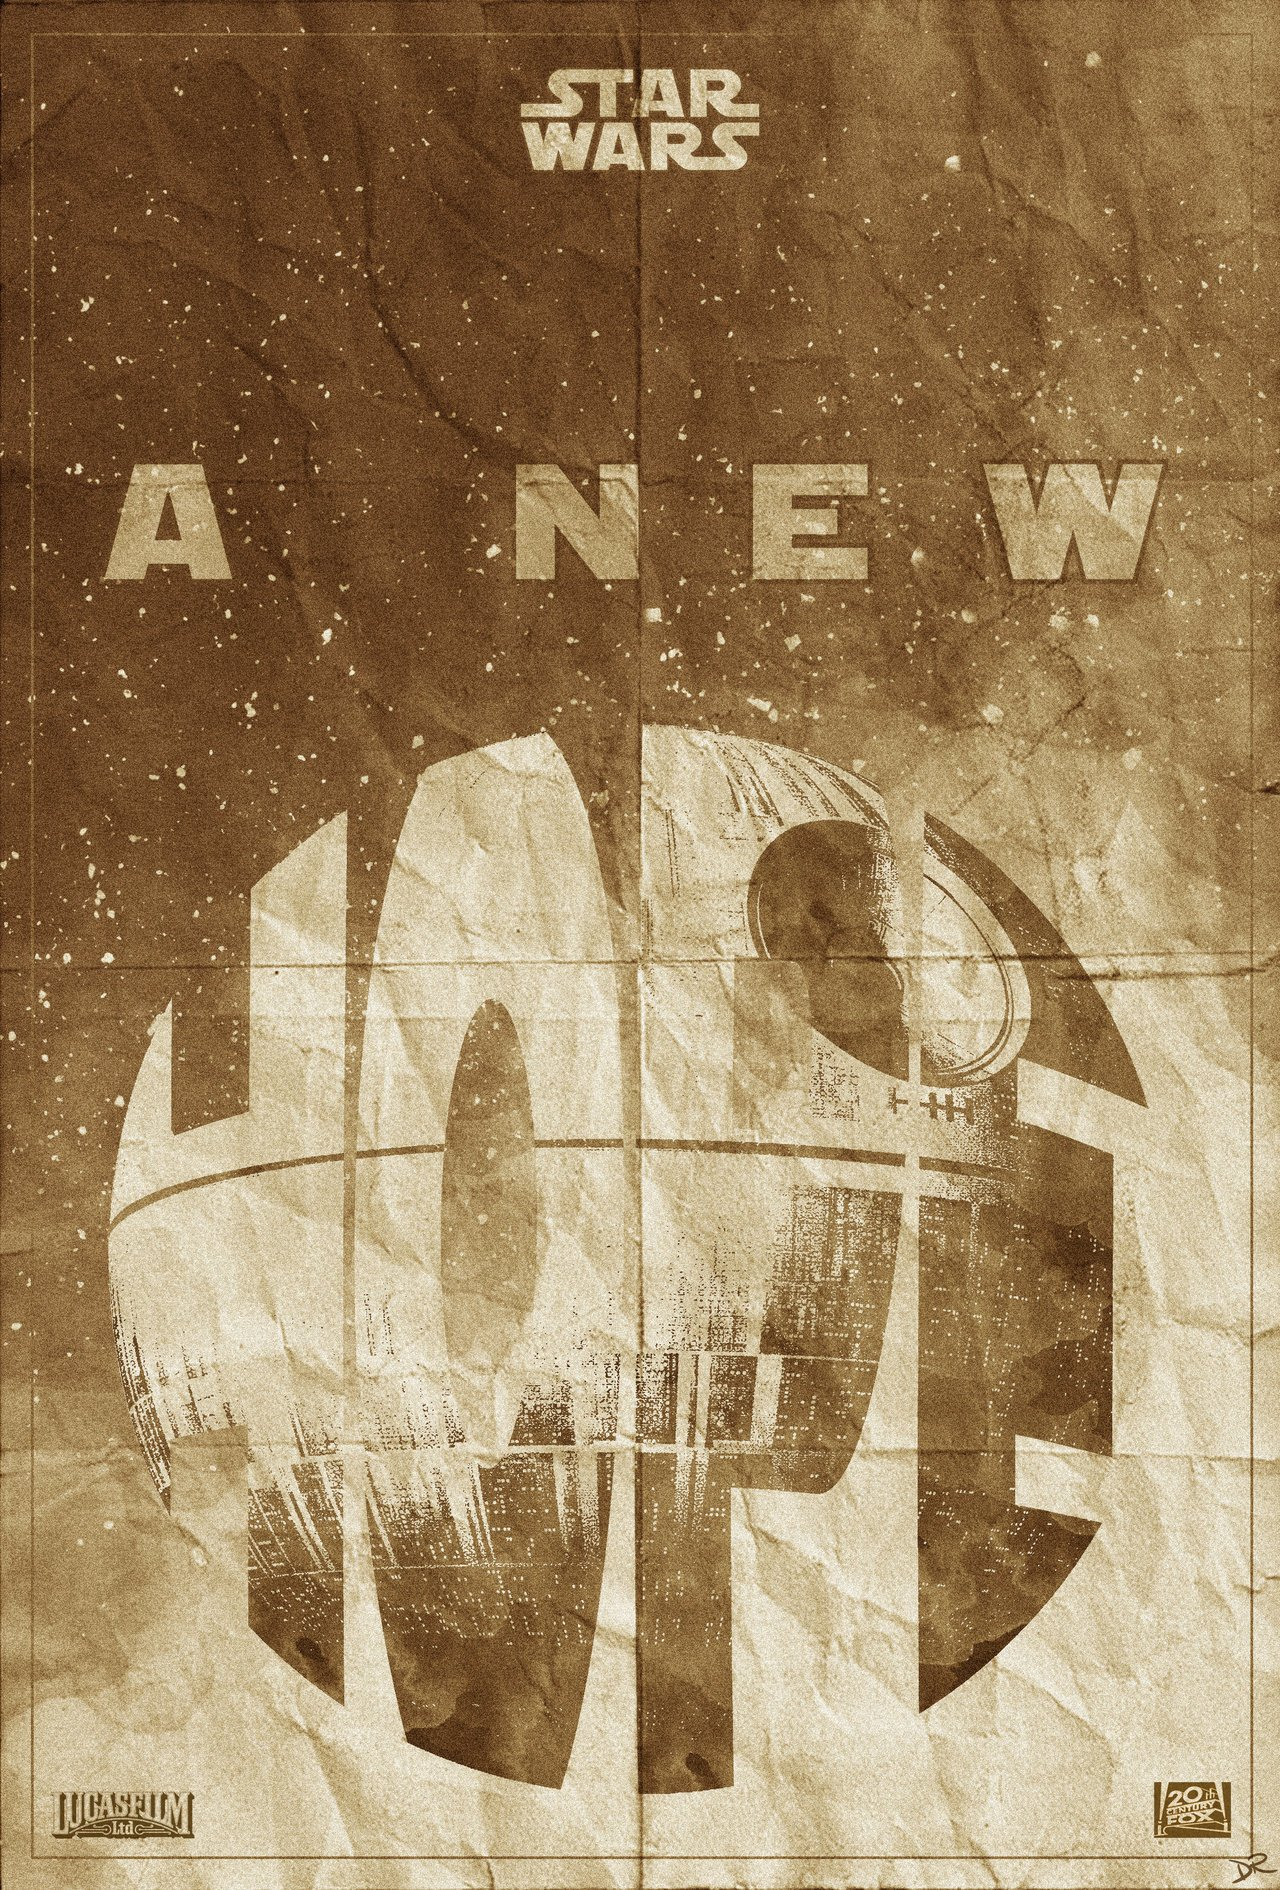 star_wars_a_new_hope_poster_by_danieleredrossini-d7scpqd